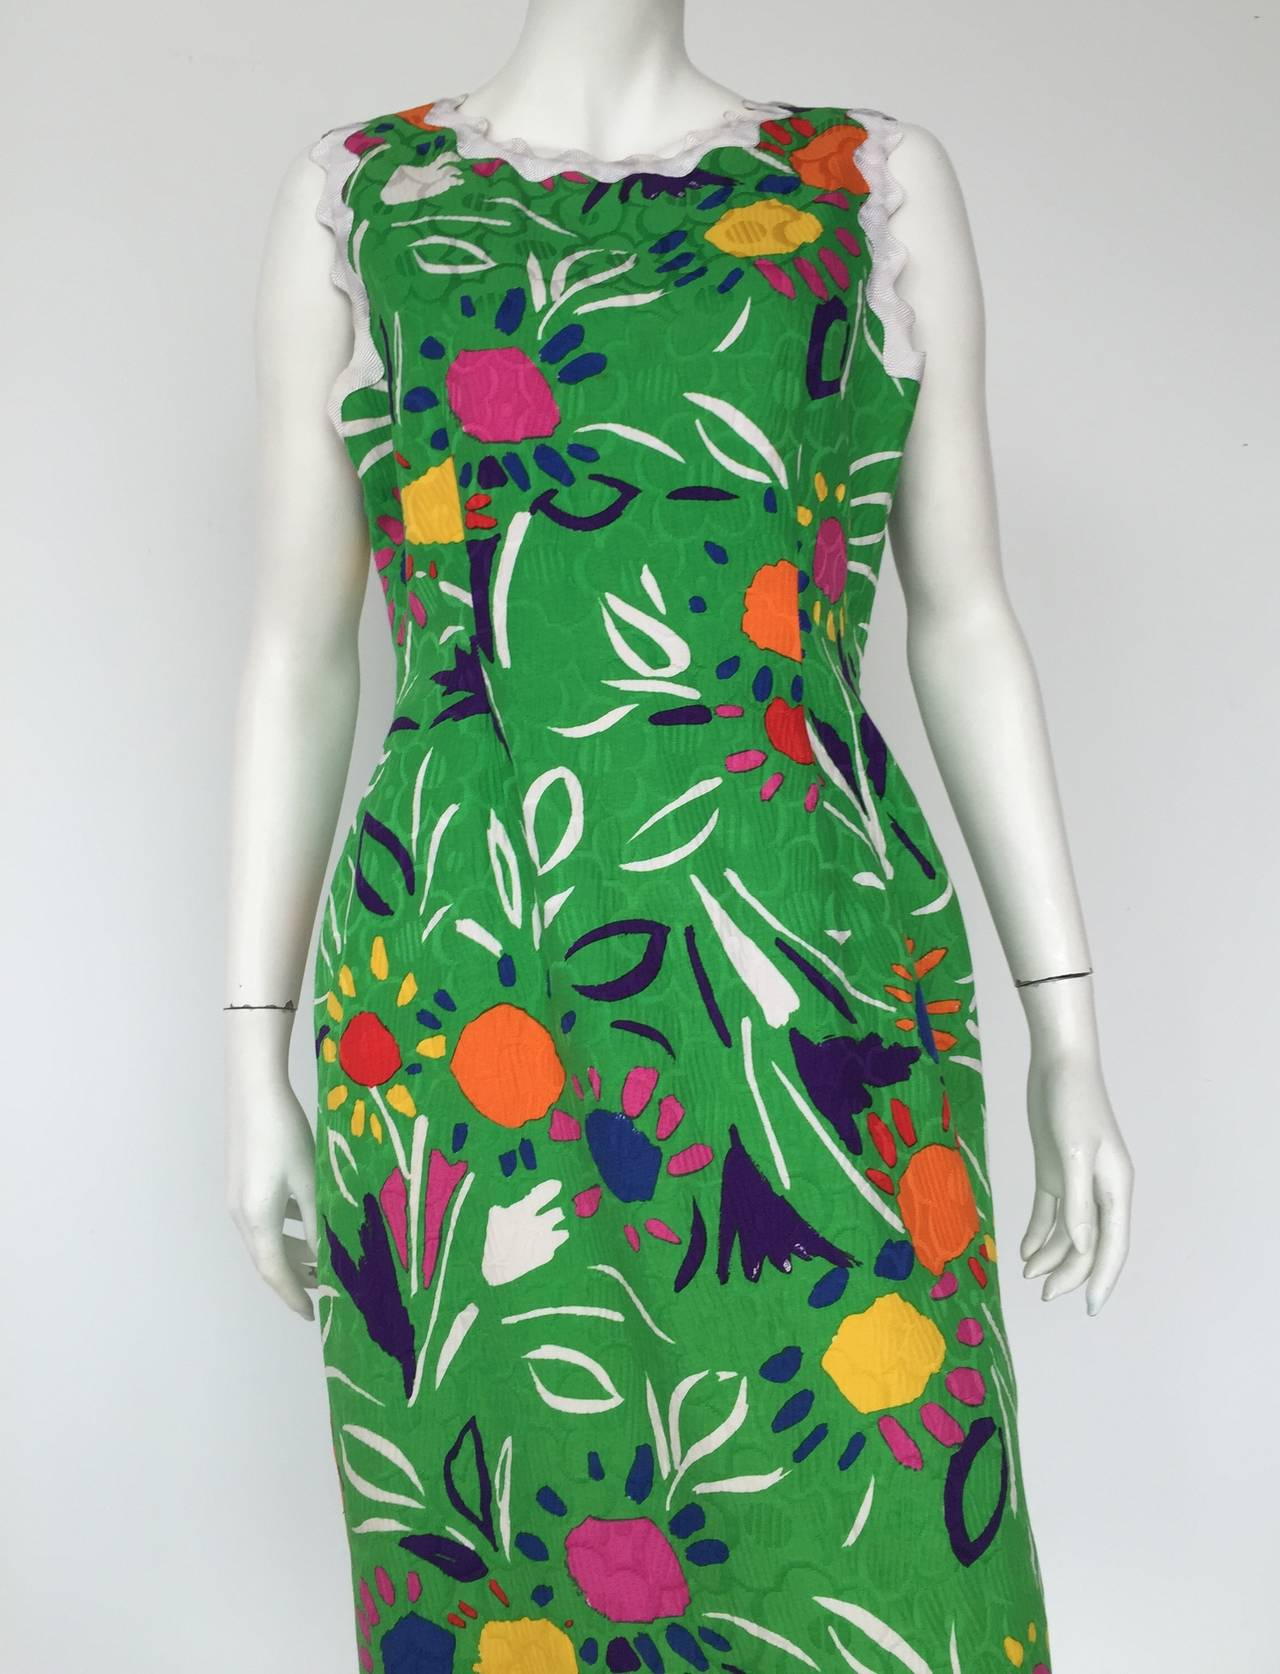 Bill Blass 1970s cotton sheath dress perfect for spring / summer with white grosgrain ribbon wave trim.  